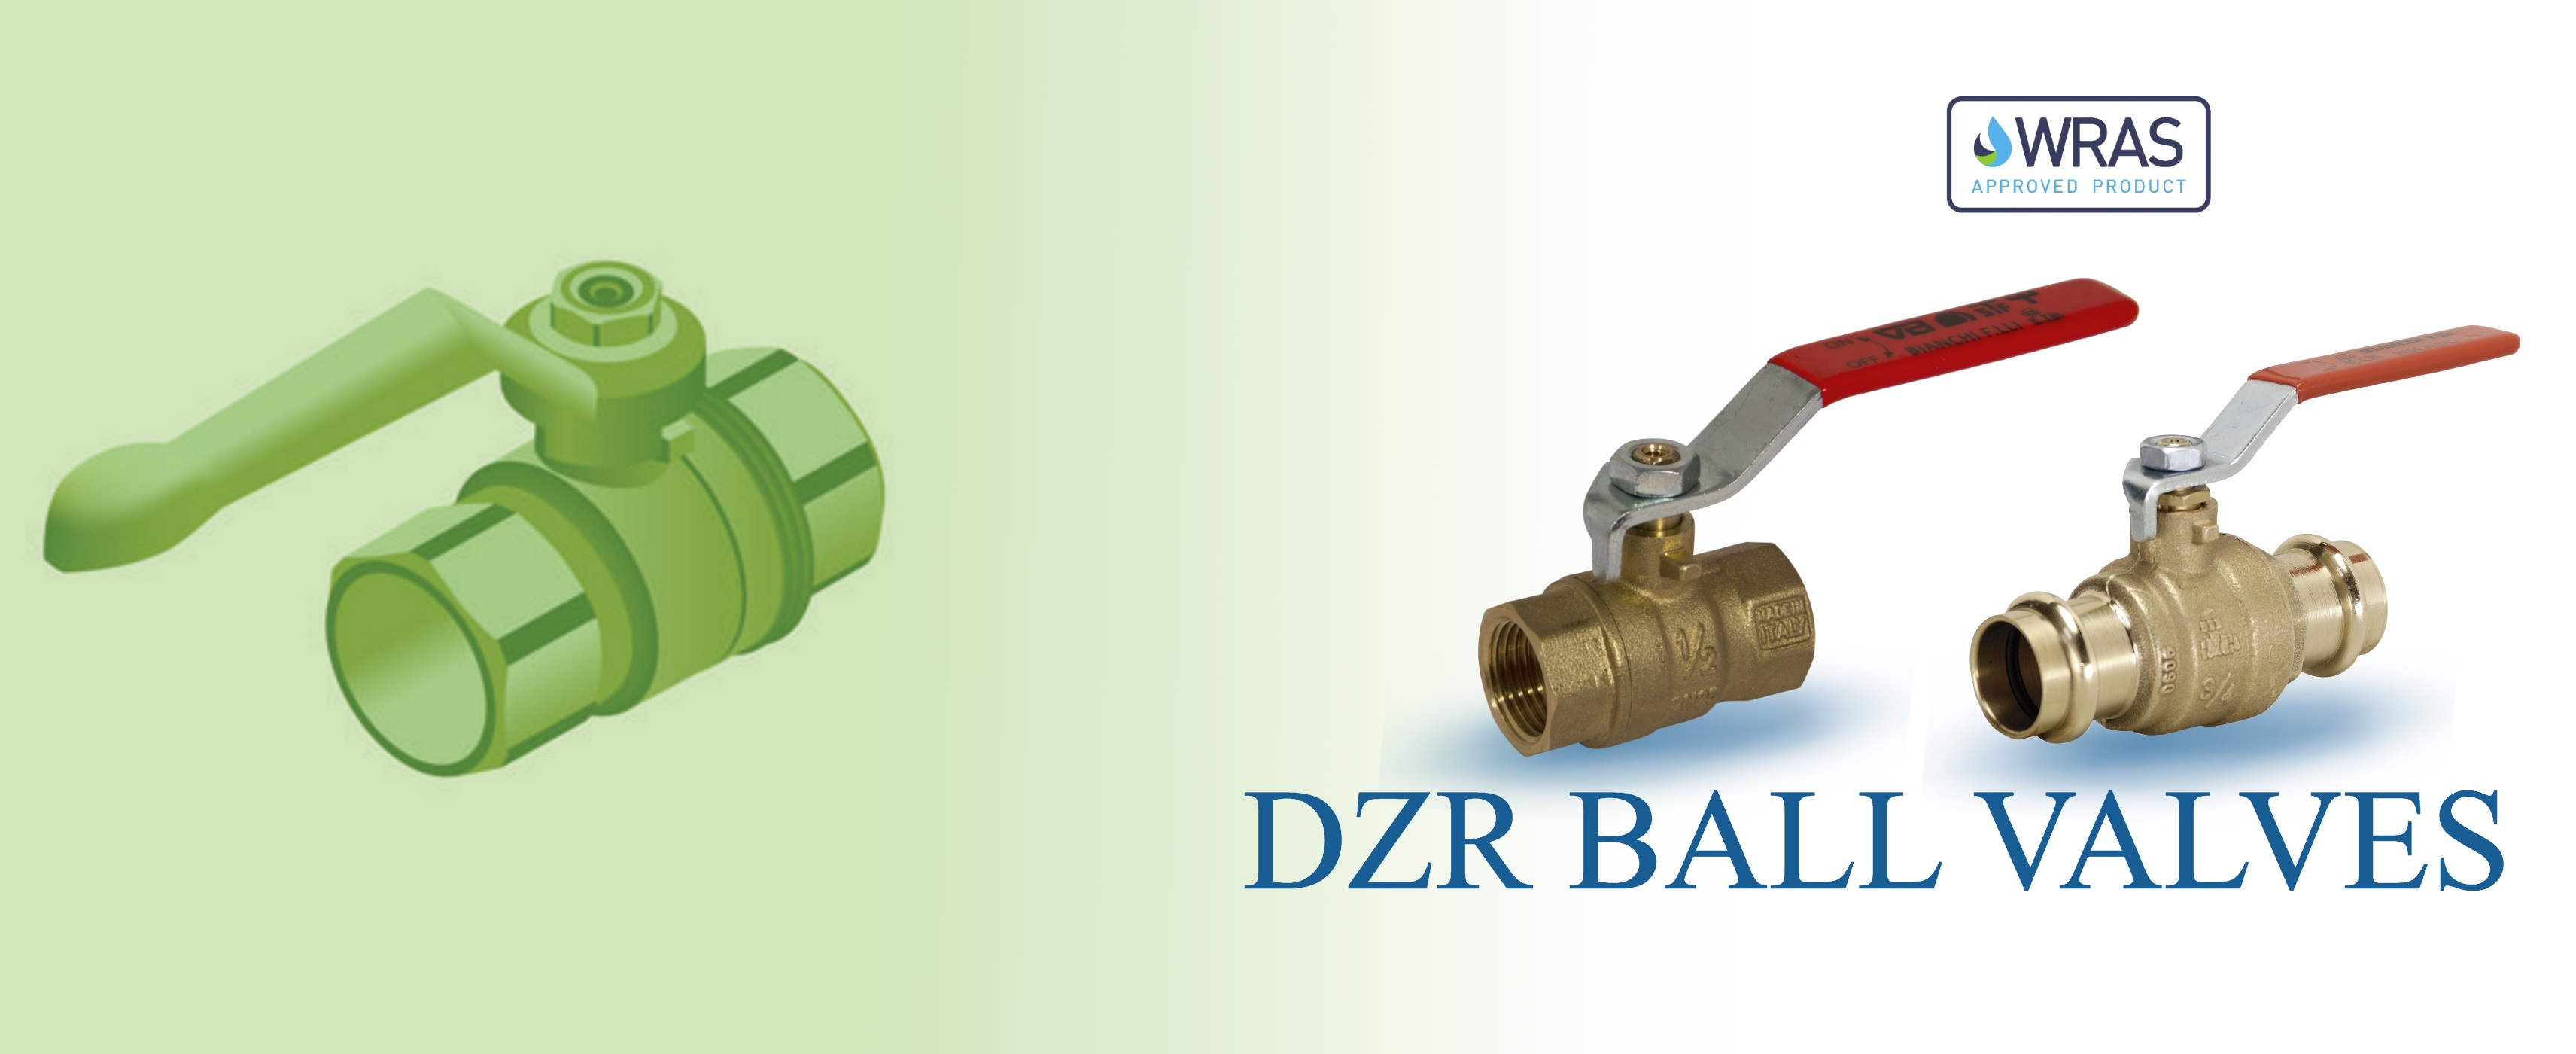 DZR ball valves